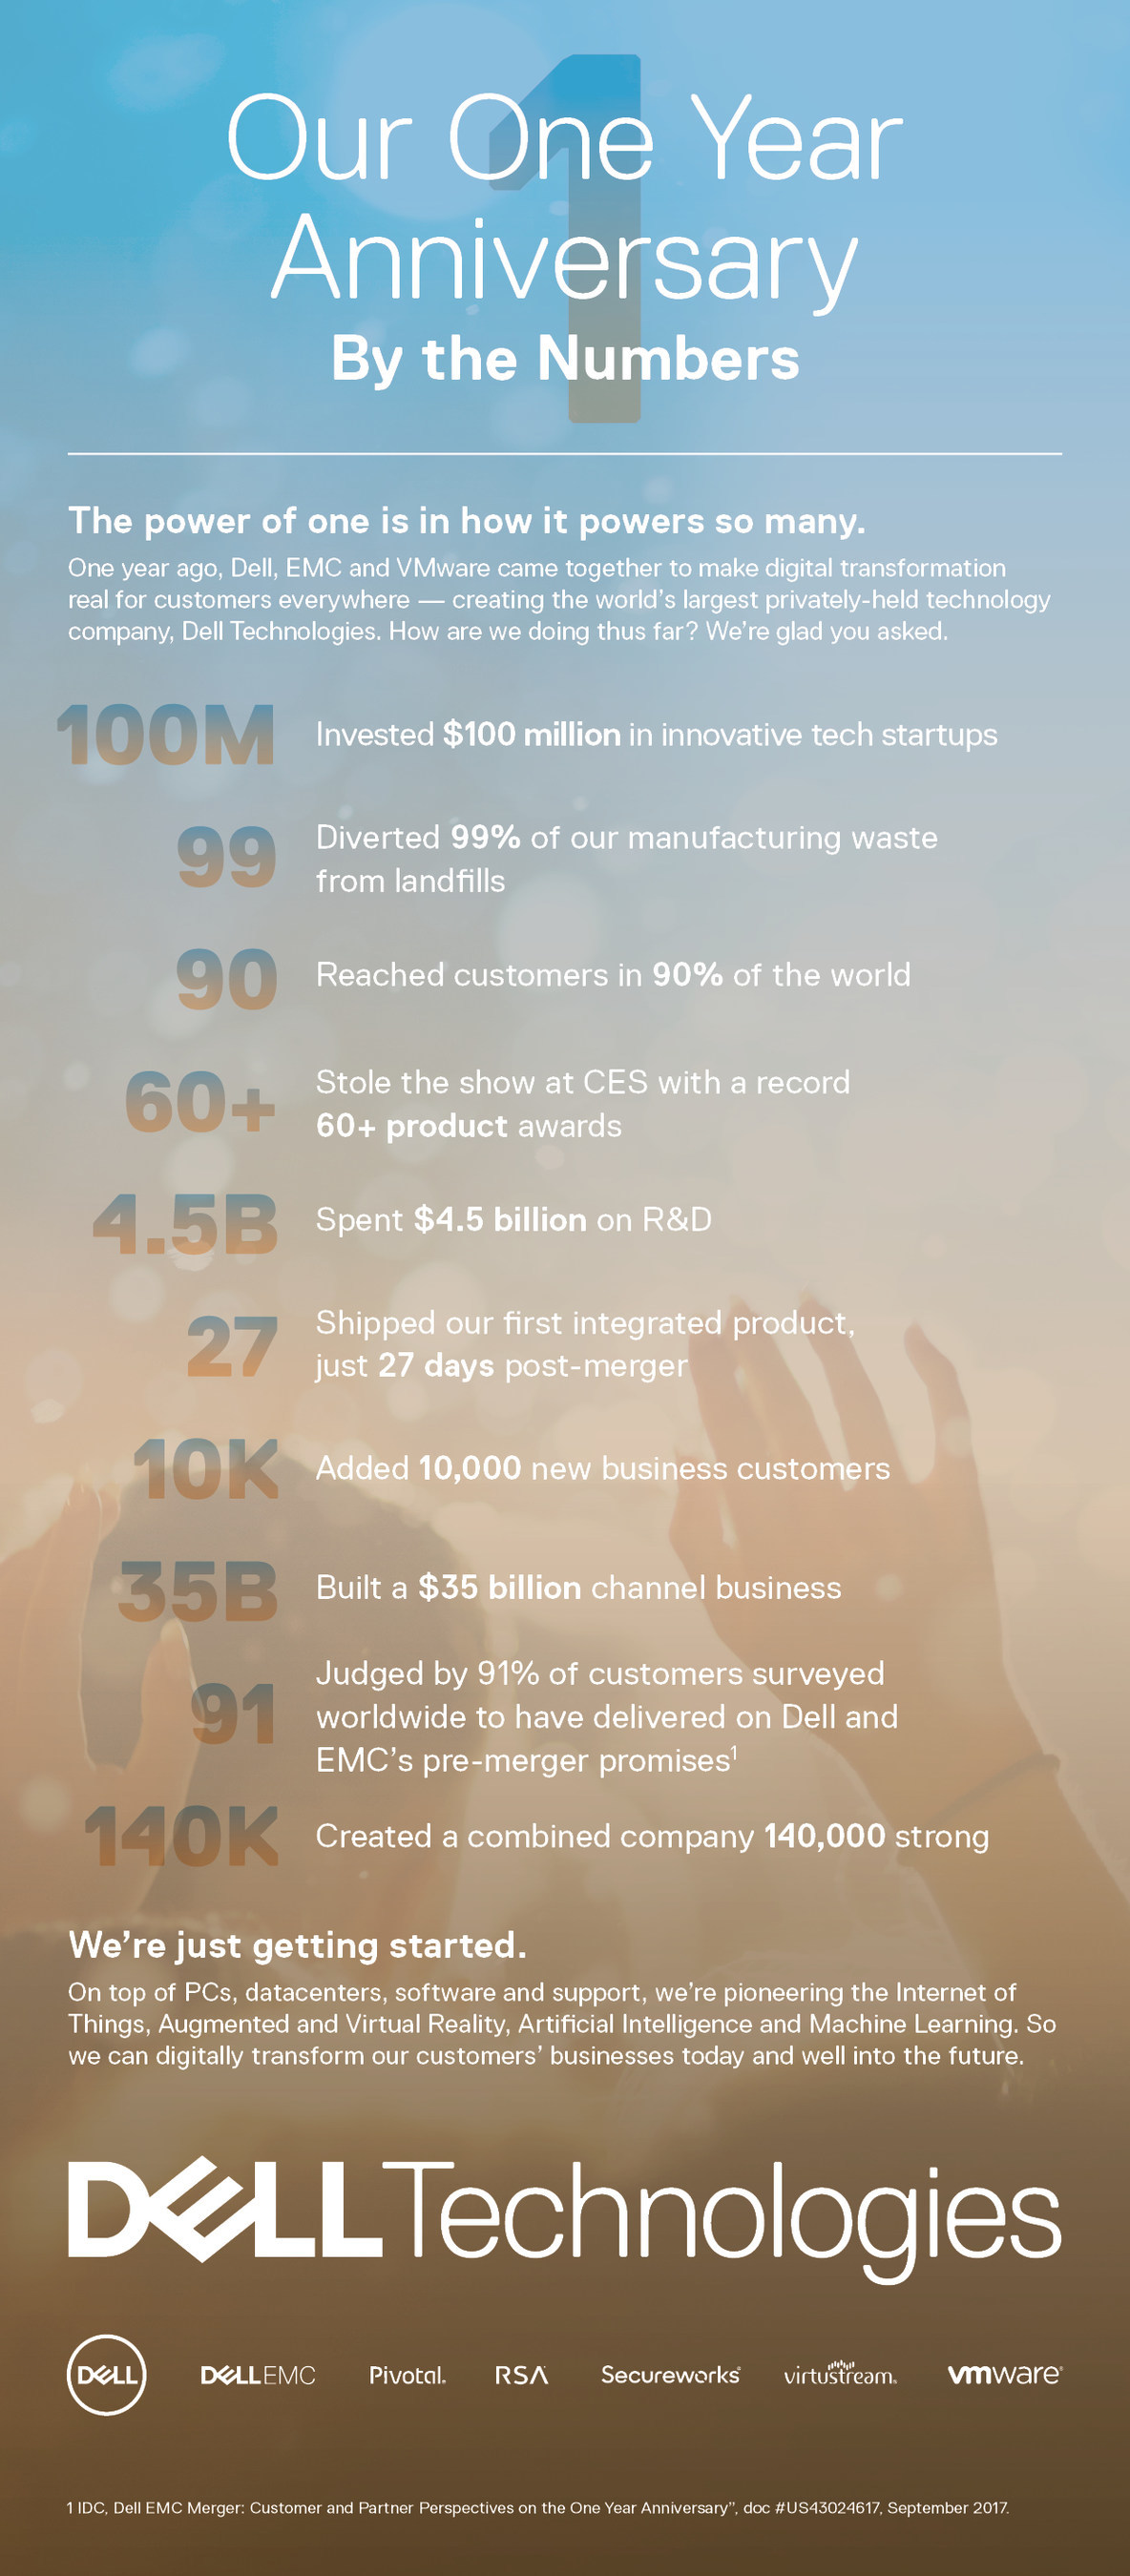 Our One Year Anniversary By The Numbers